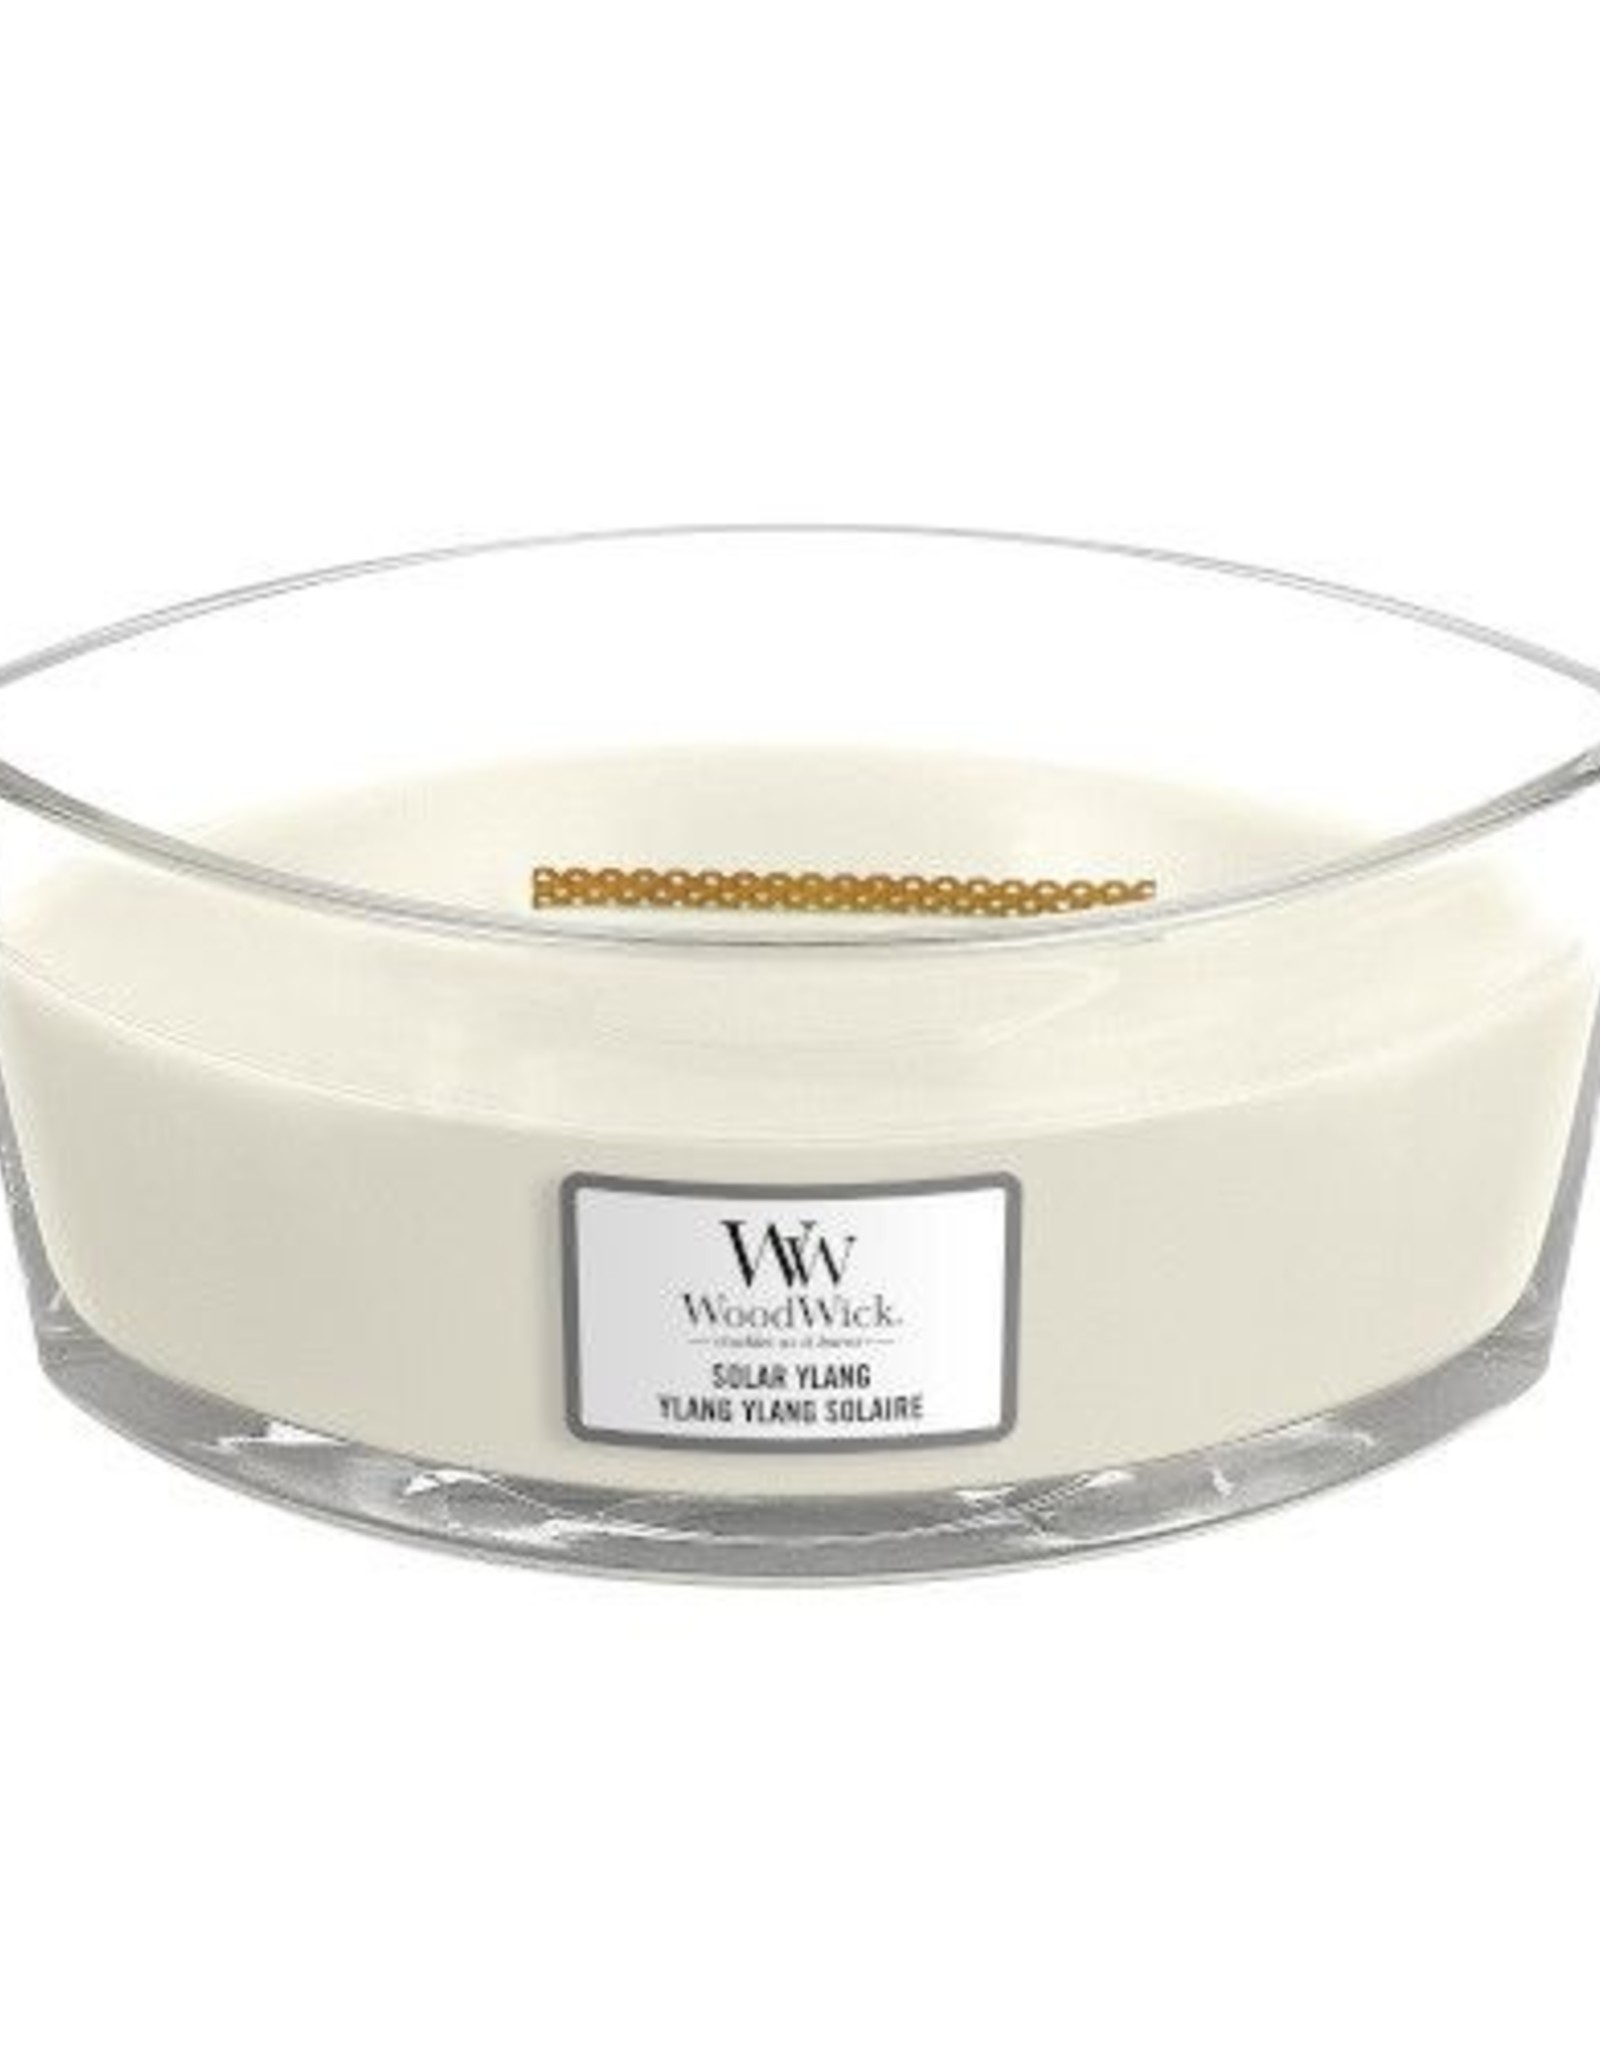 Woodwick Woodwick Solar Ylang Ellipse Candle